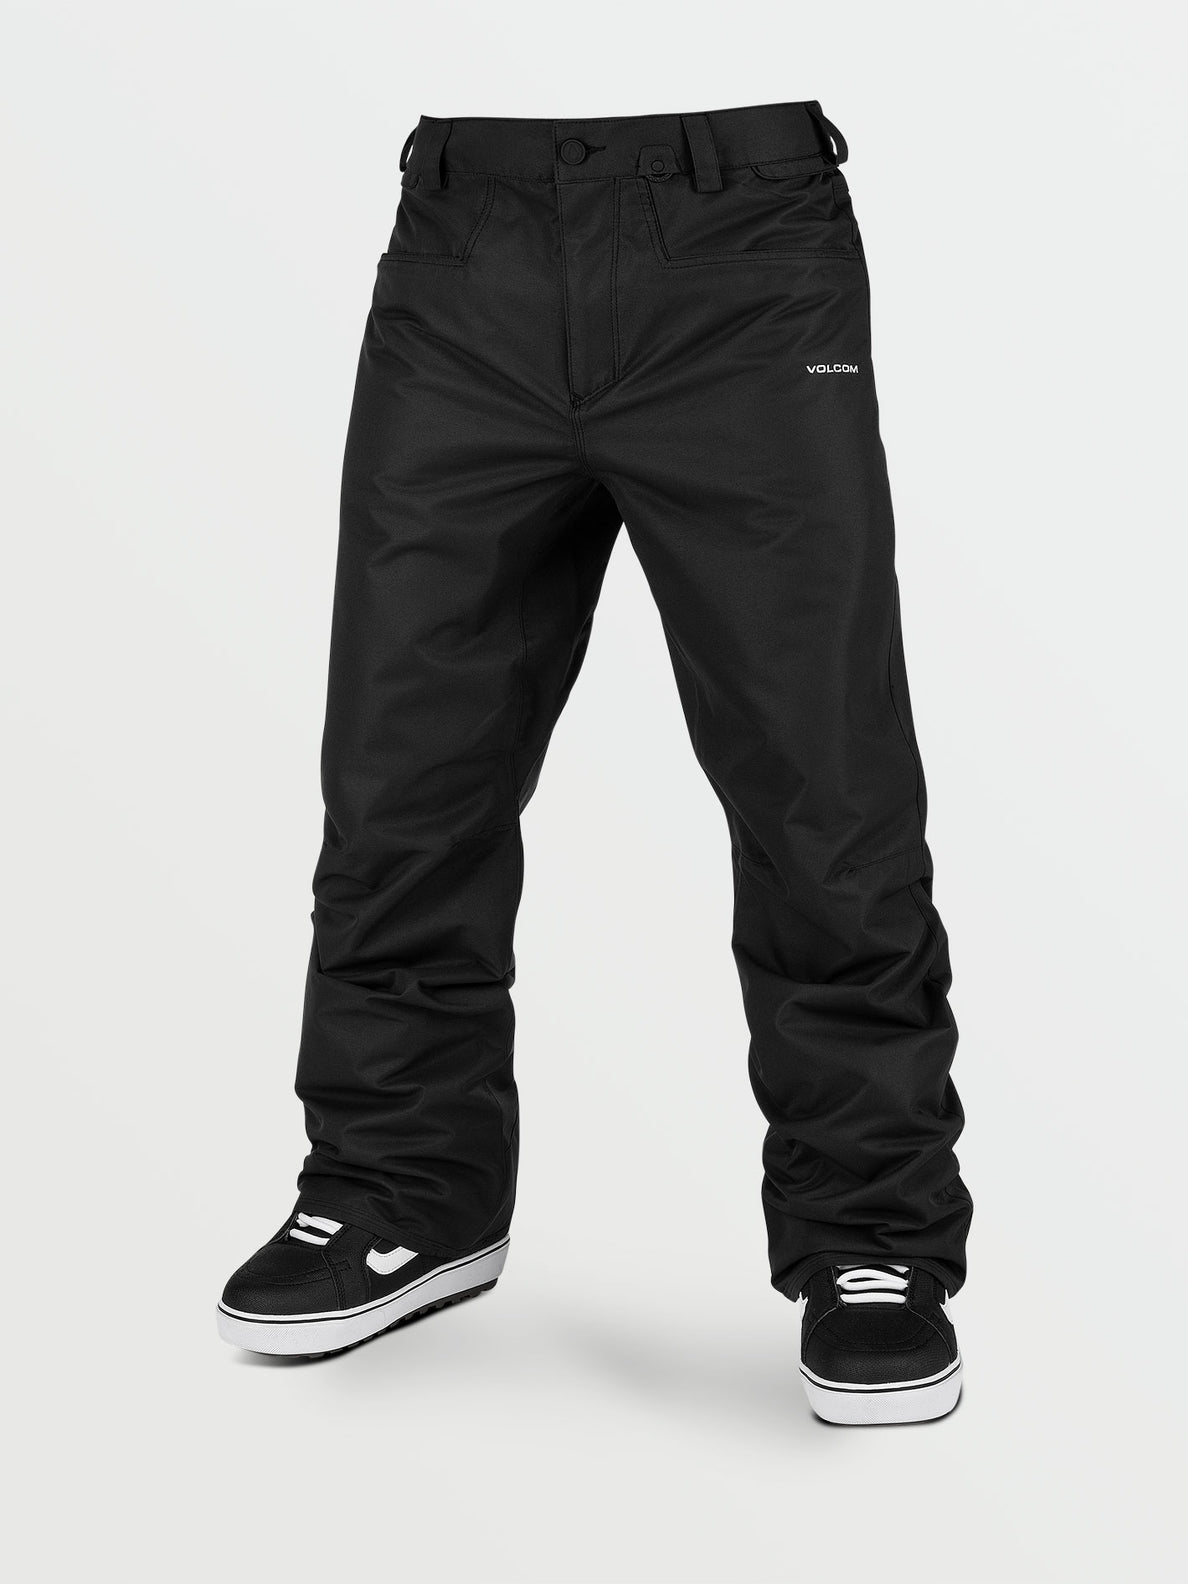 Carbon Pant Black (G1352112_BLK) [F]